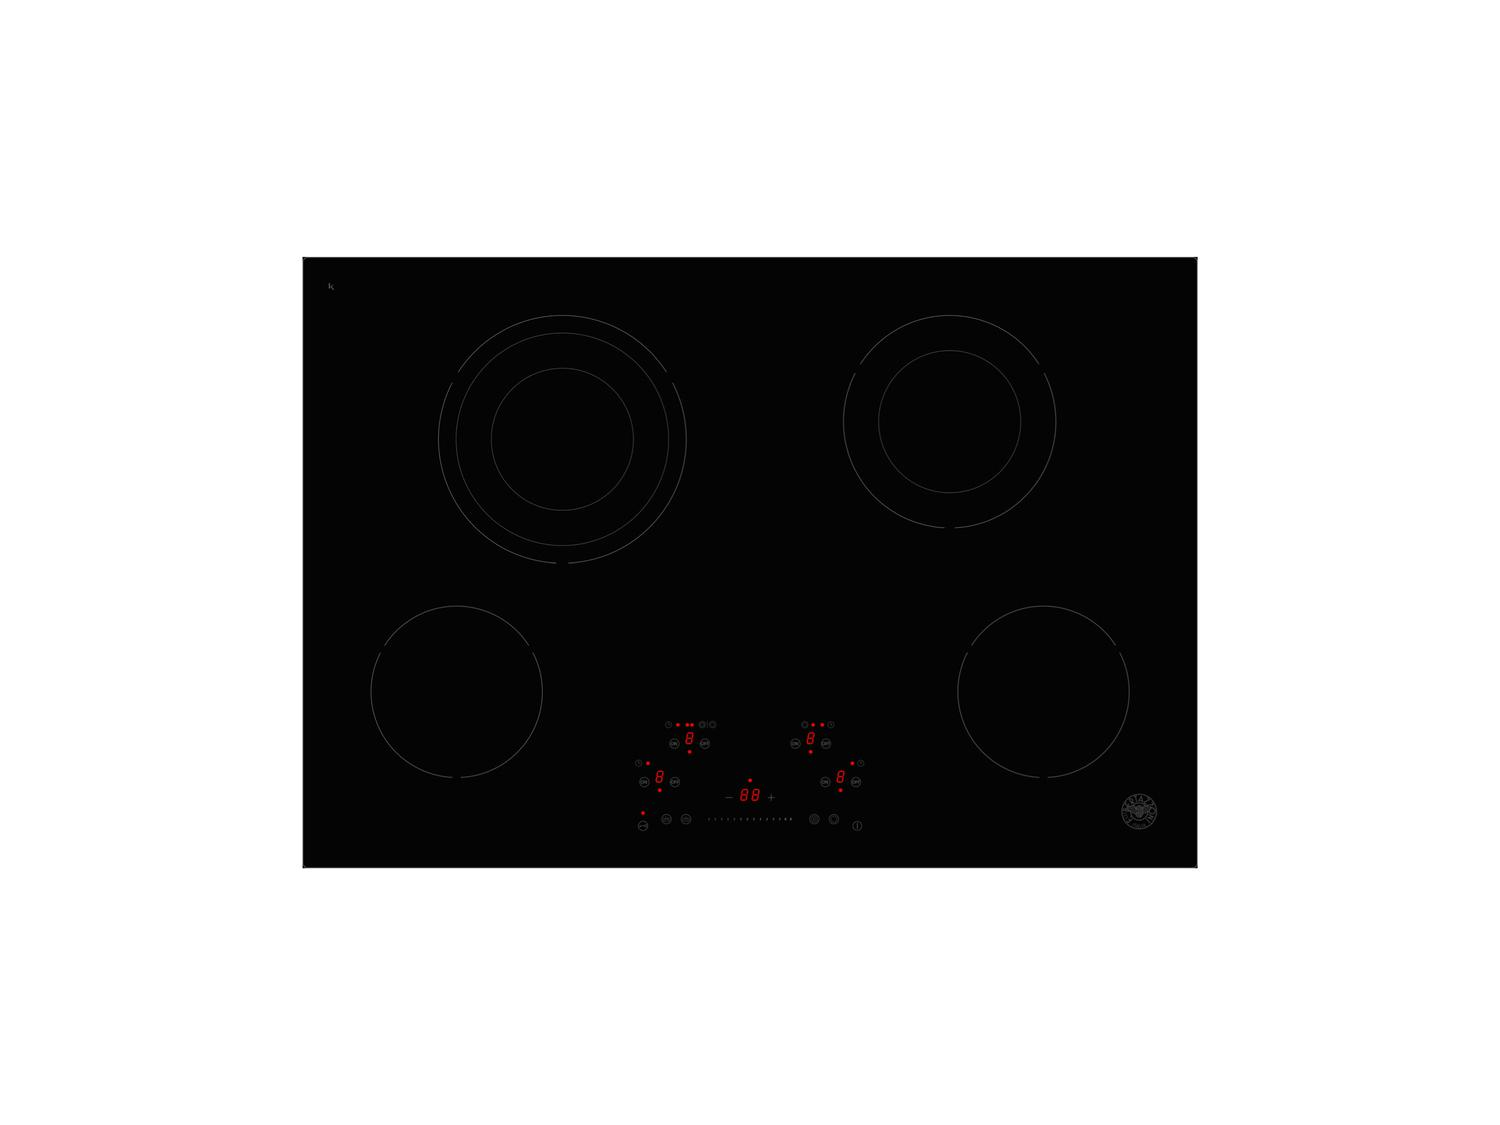 30 Ceran Touch Control Cooktop 4 heating zones Nero